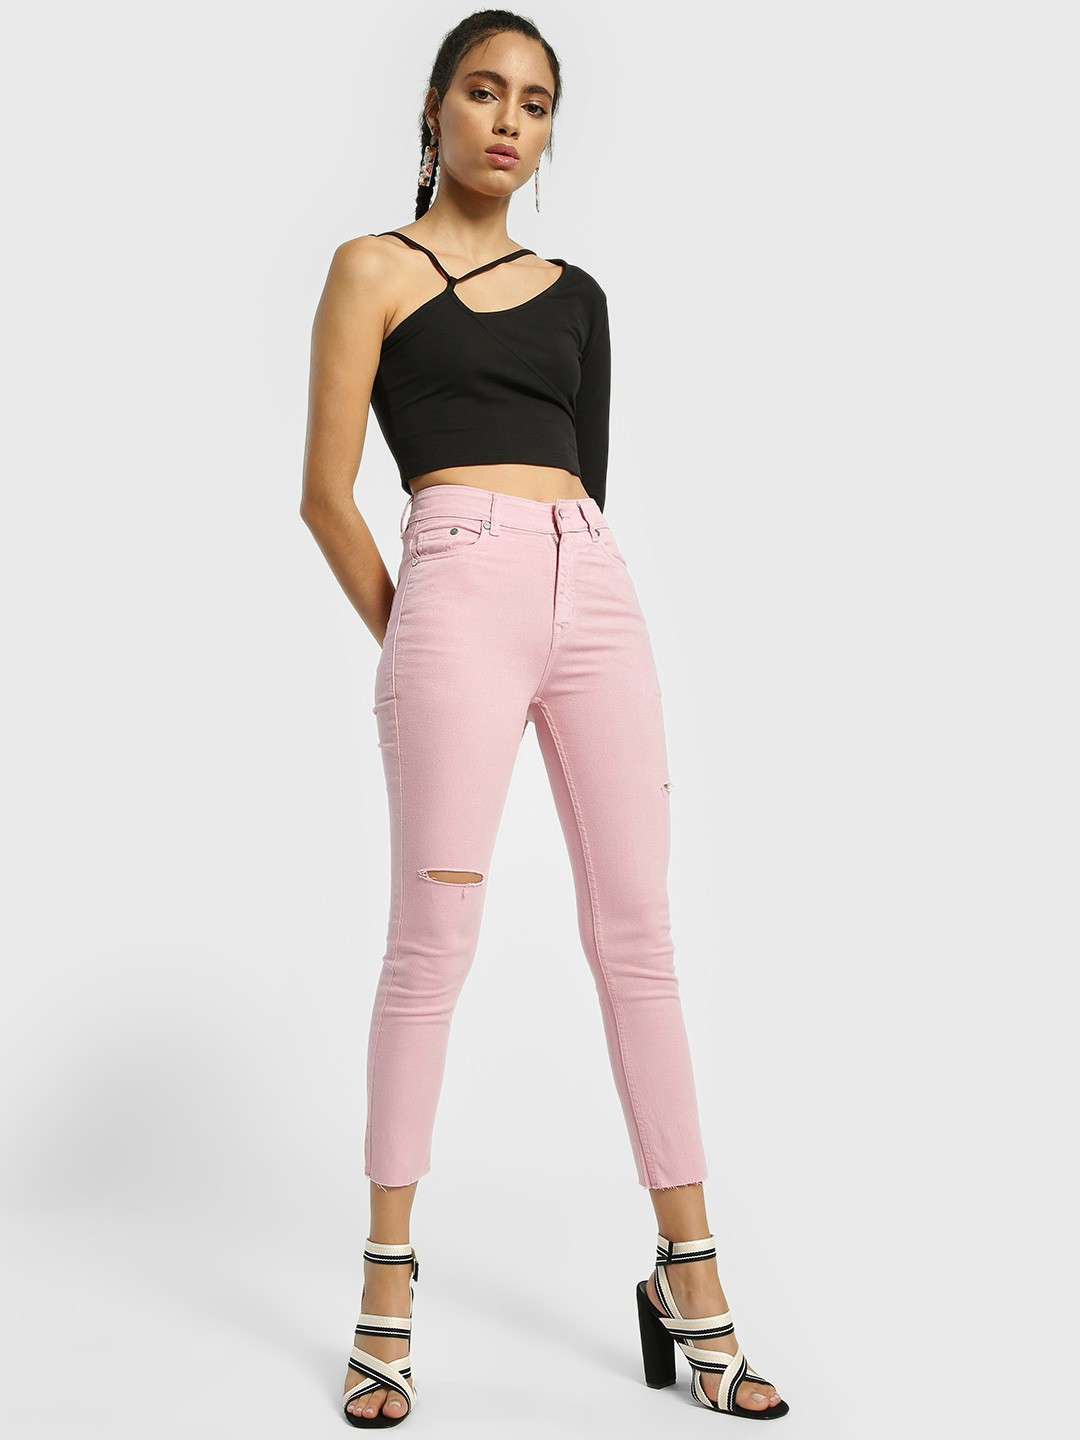 K Denim Pink KOOVS Thigh Split Cropped Skinny Jeans 1